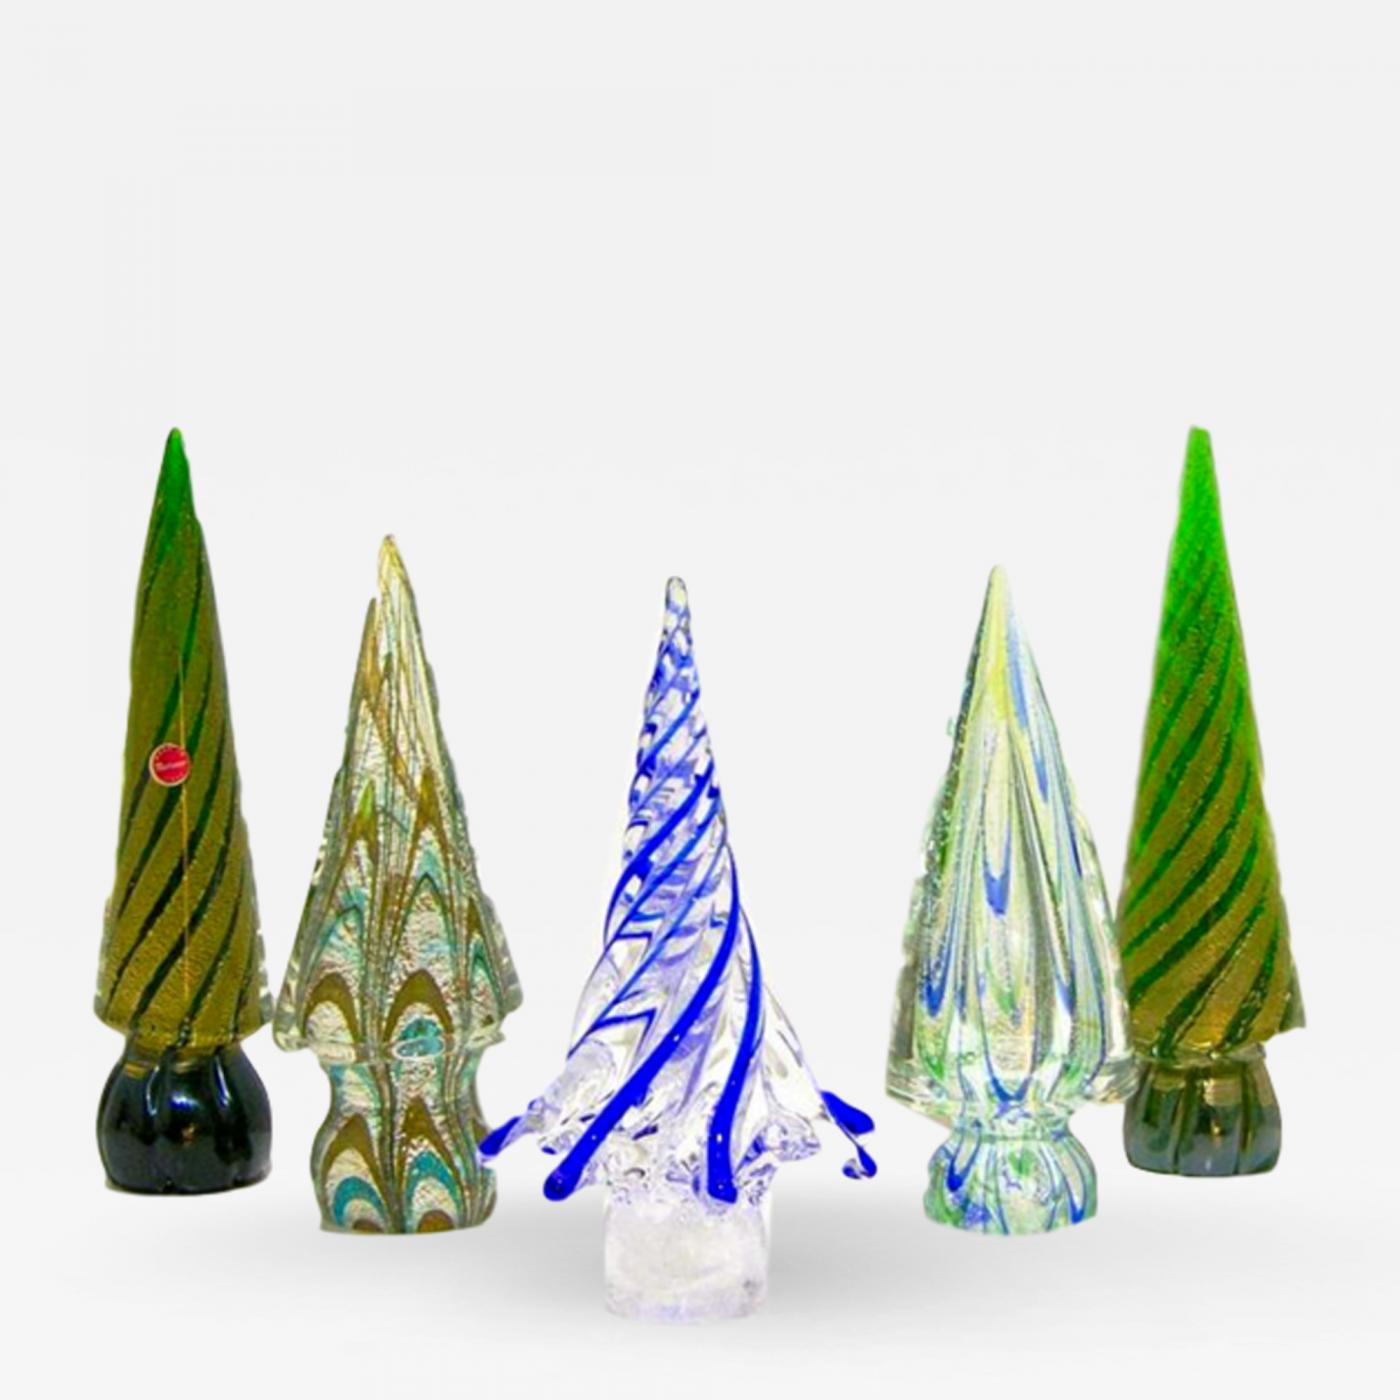 Formia Murano Vintage Italian Murano Glass Christmas Tree Sculptures By Formia